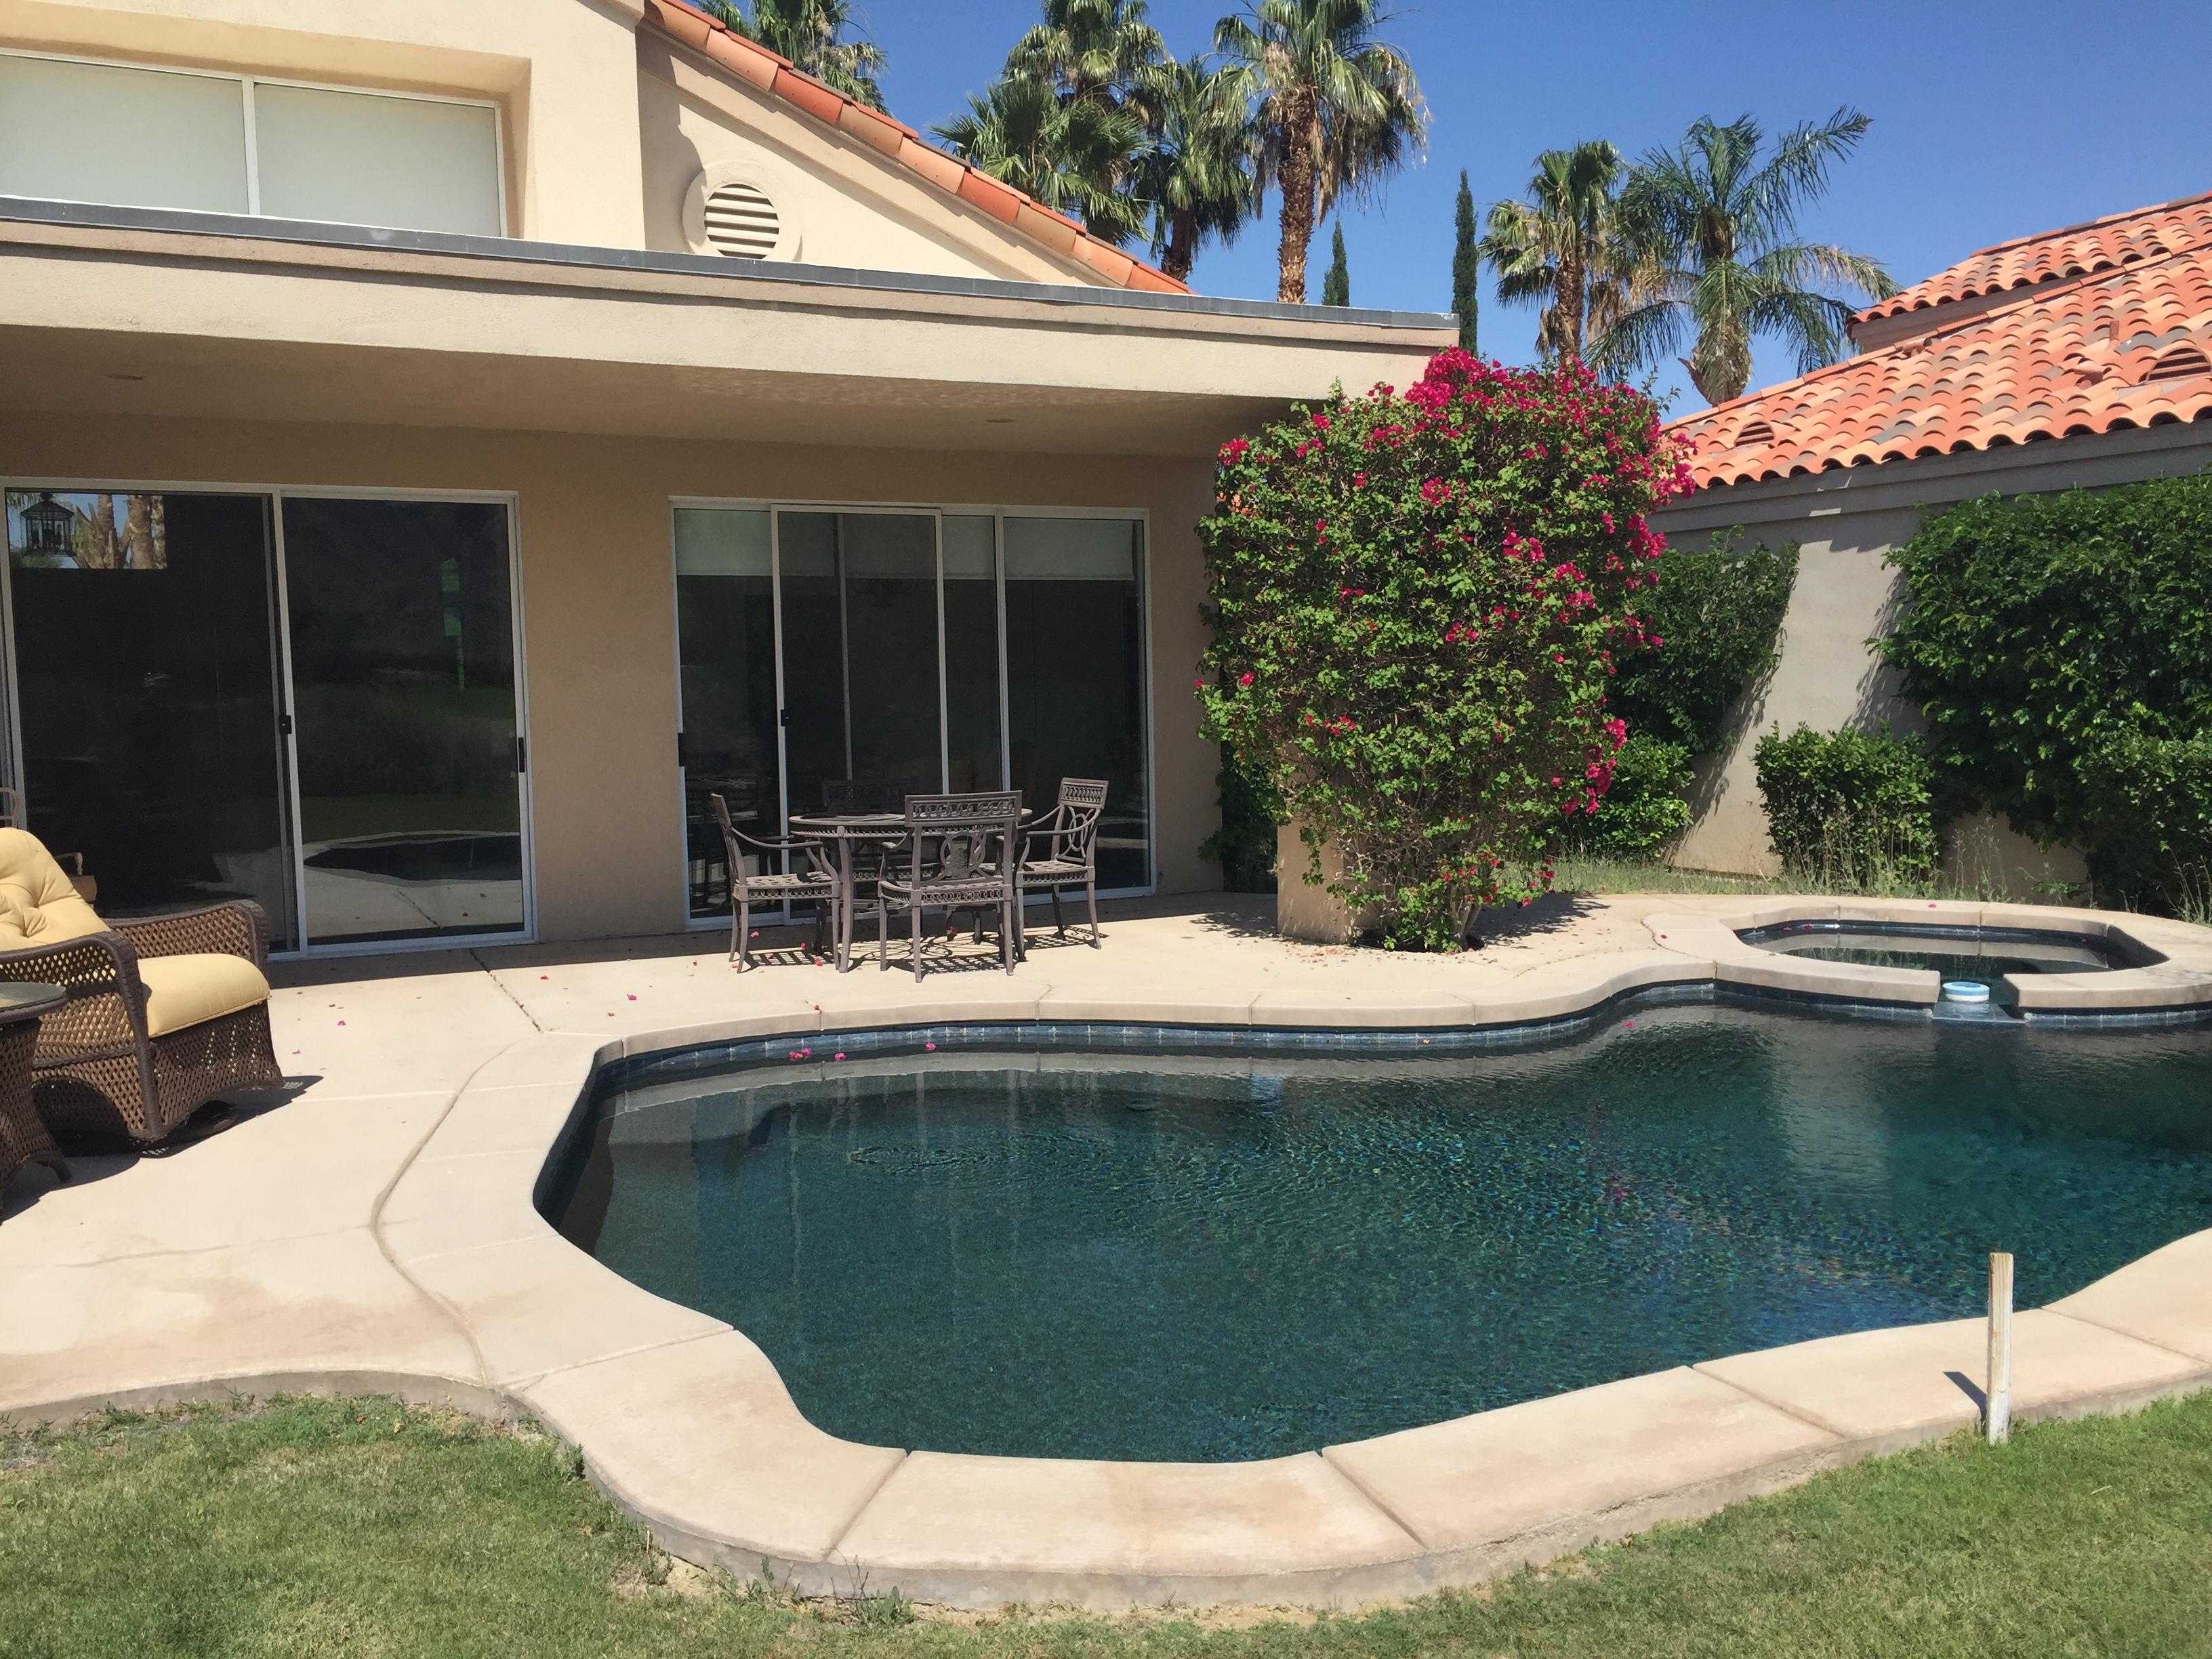 Single Family Home for Sale at 56525 Riviera La Quinta, California, 92253 United States